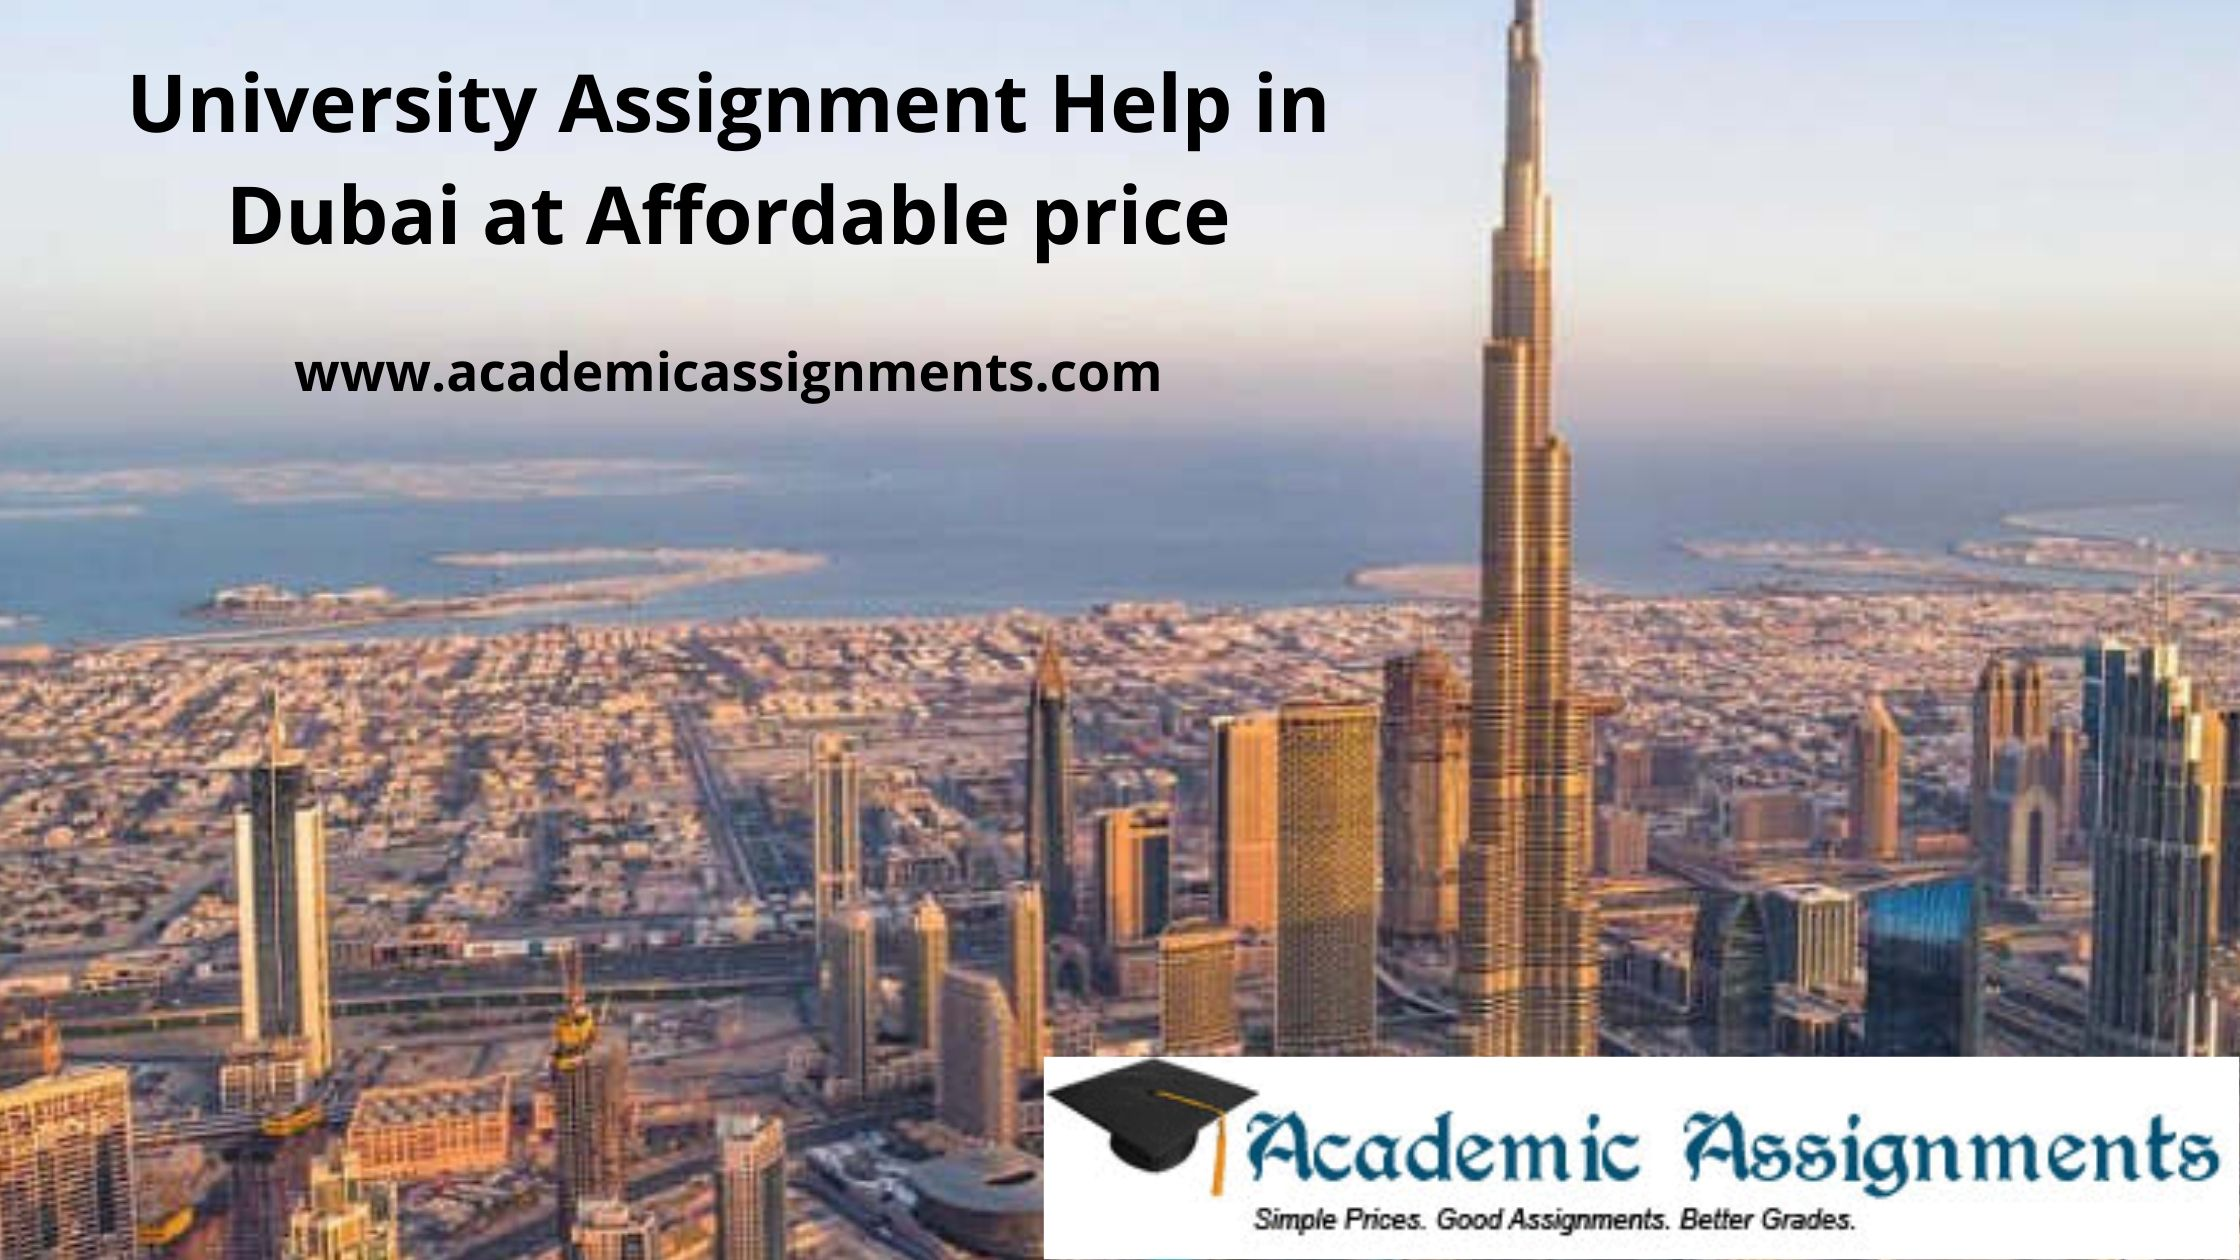 University Assignment Help in Dubai at Affordable price